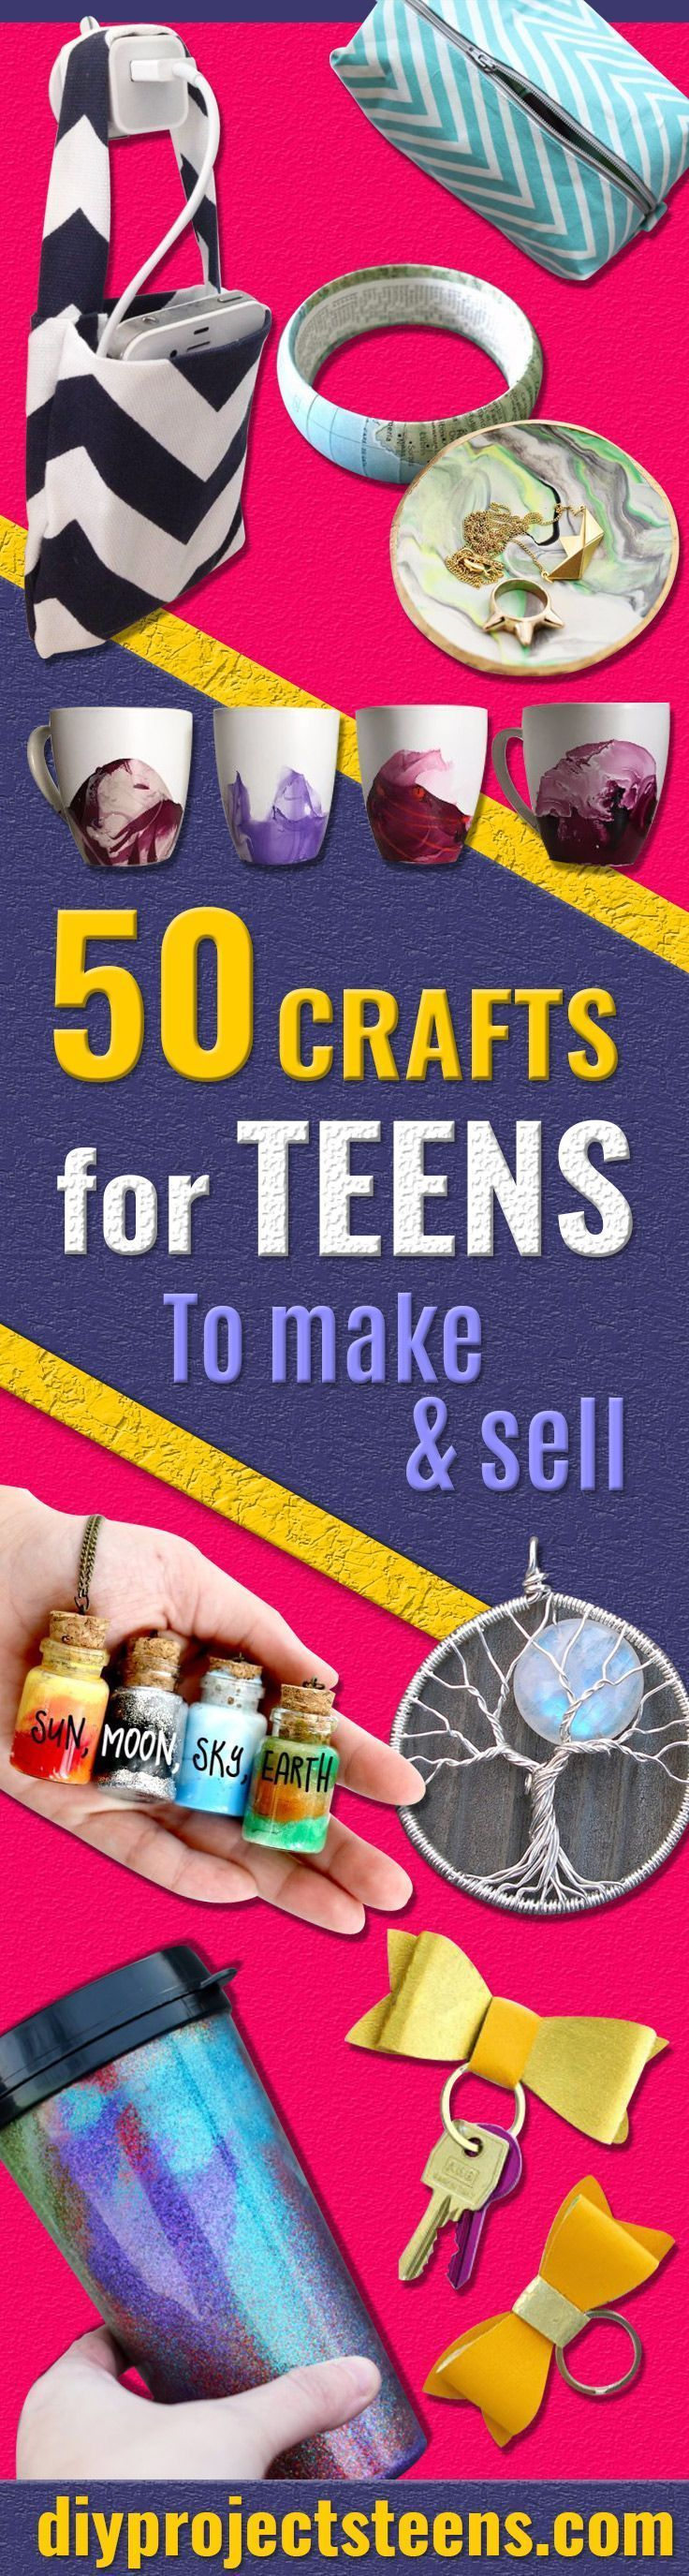 Sewing crafts for teens - Cool Crafts For Teens To Make And Sell Creative Diy Projects To Make And Sell